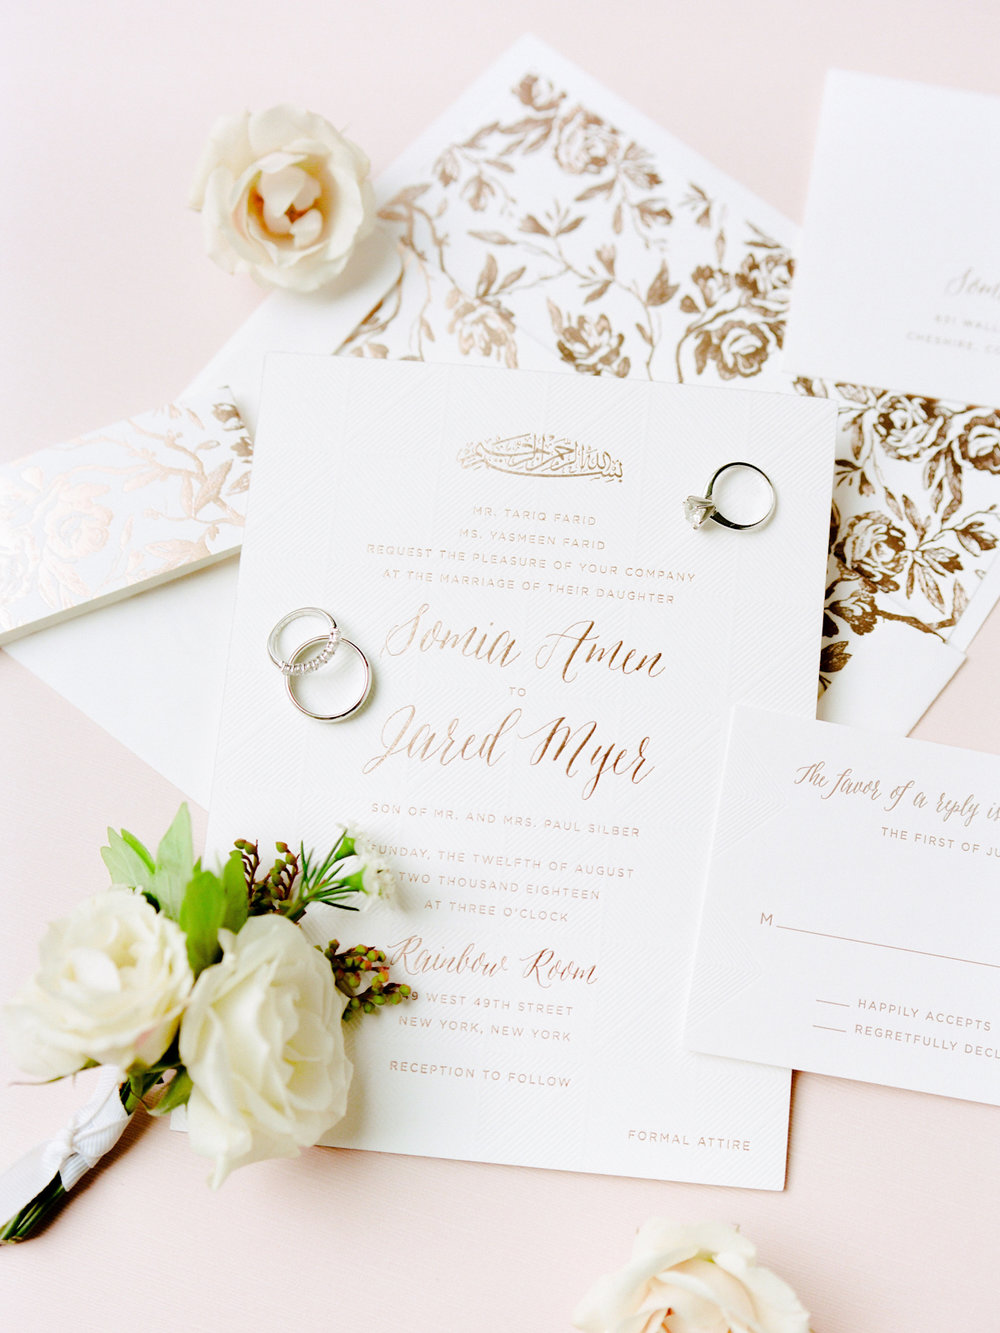 Rainbow Room Wedding, planner Ang Weddings and Events, photography Heather Waraksa, florals Poppies and Posies, wedding invitations Bella Figura